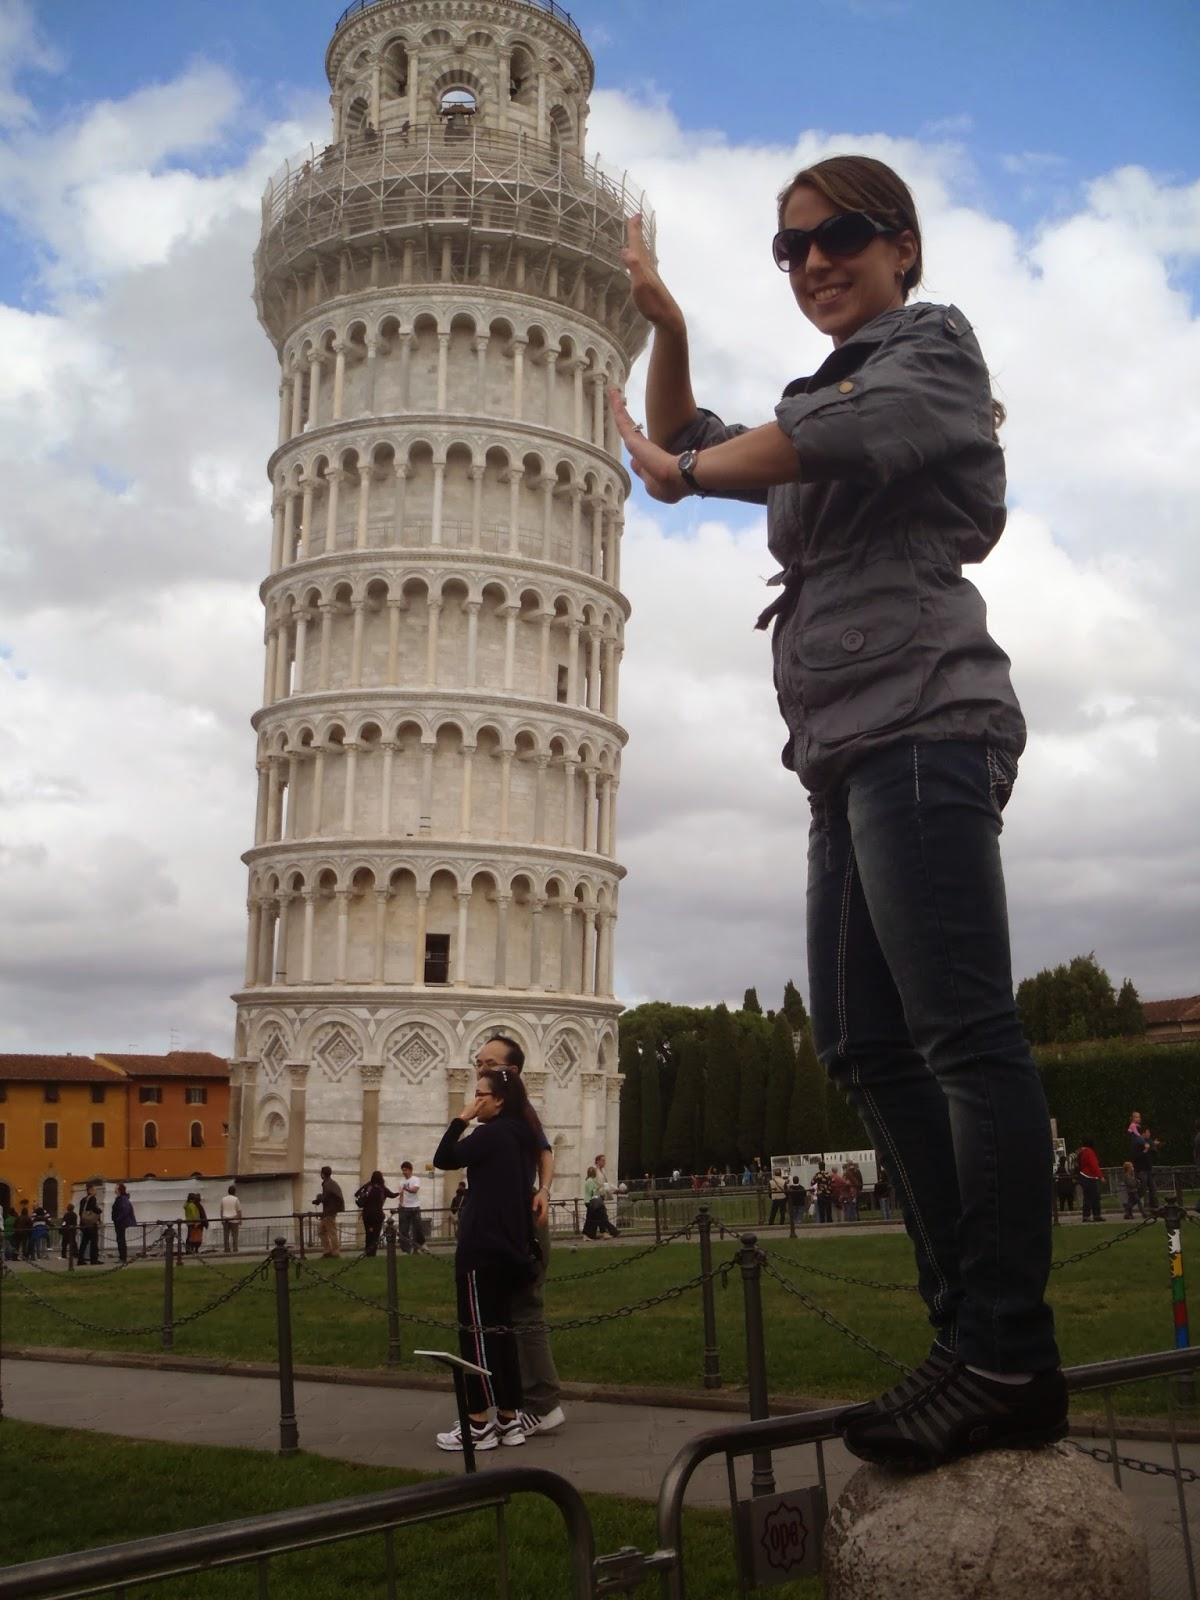 cheesy leaning tower of Pisa picture